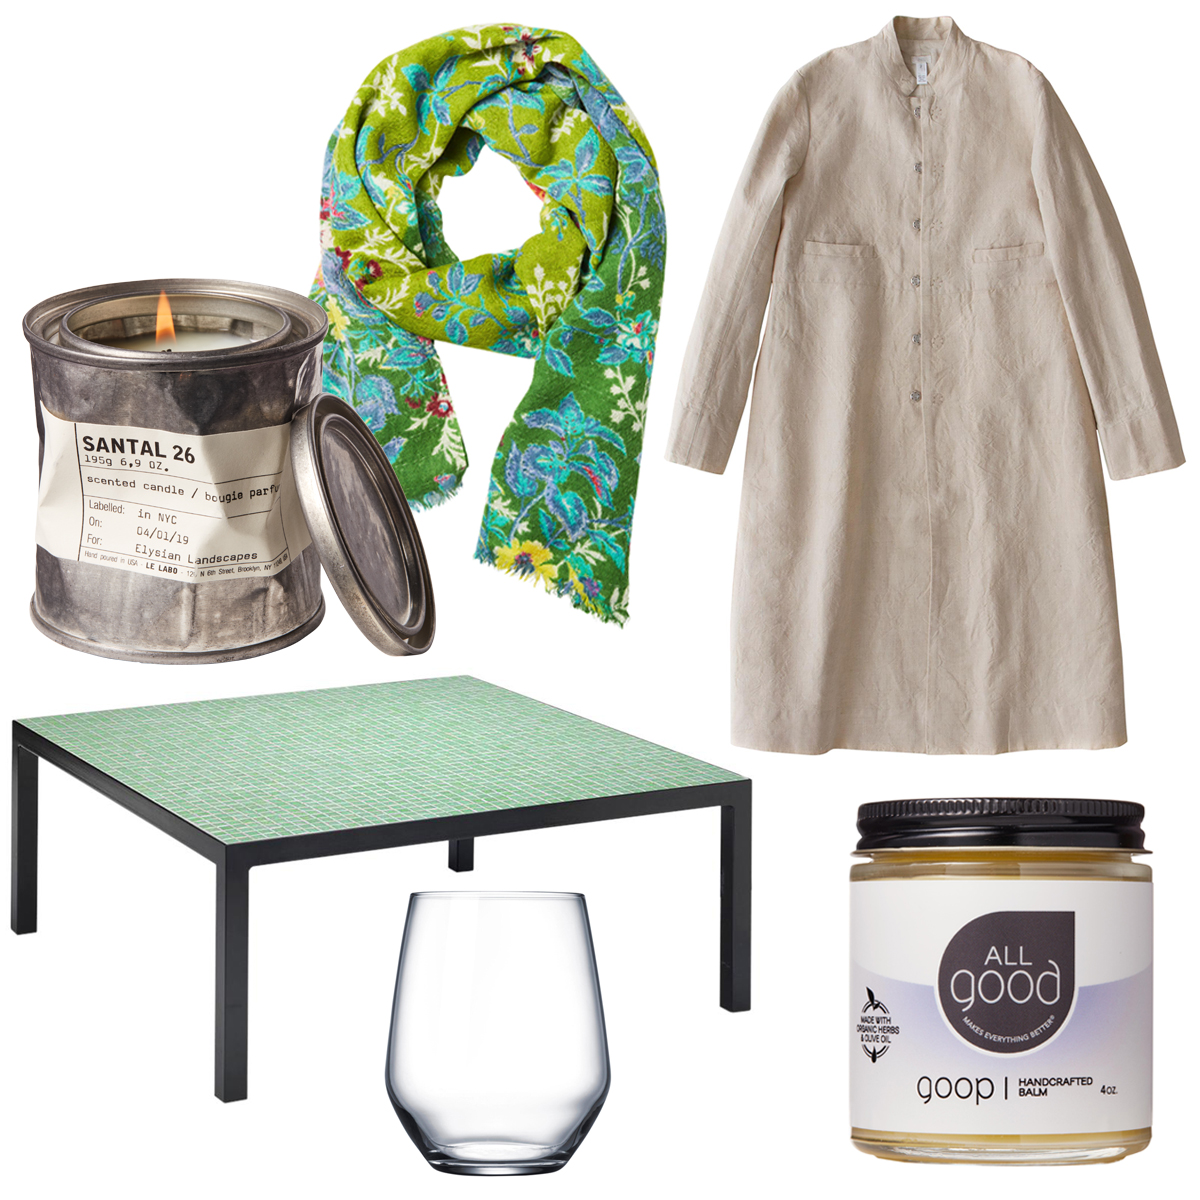 tastemaker products scarf candle table glass coat goop